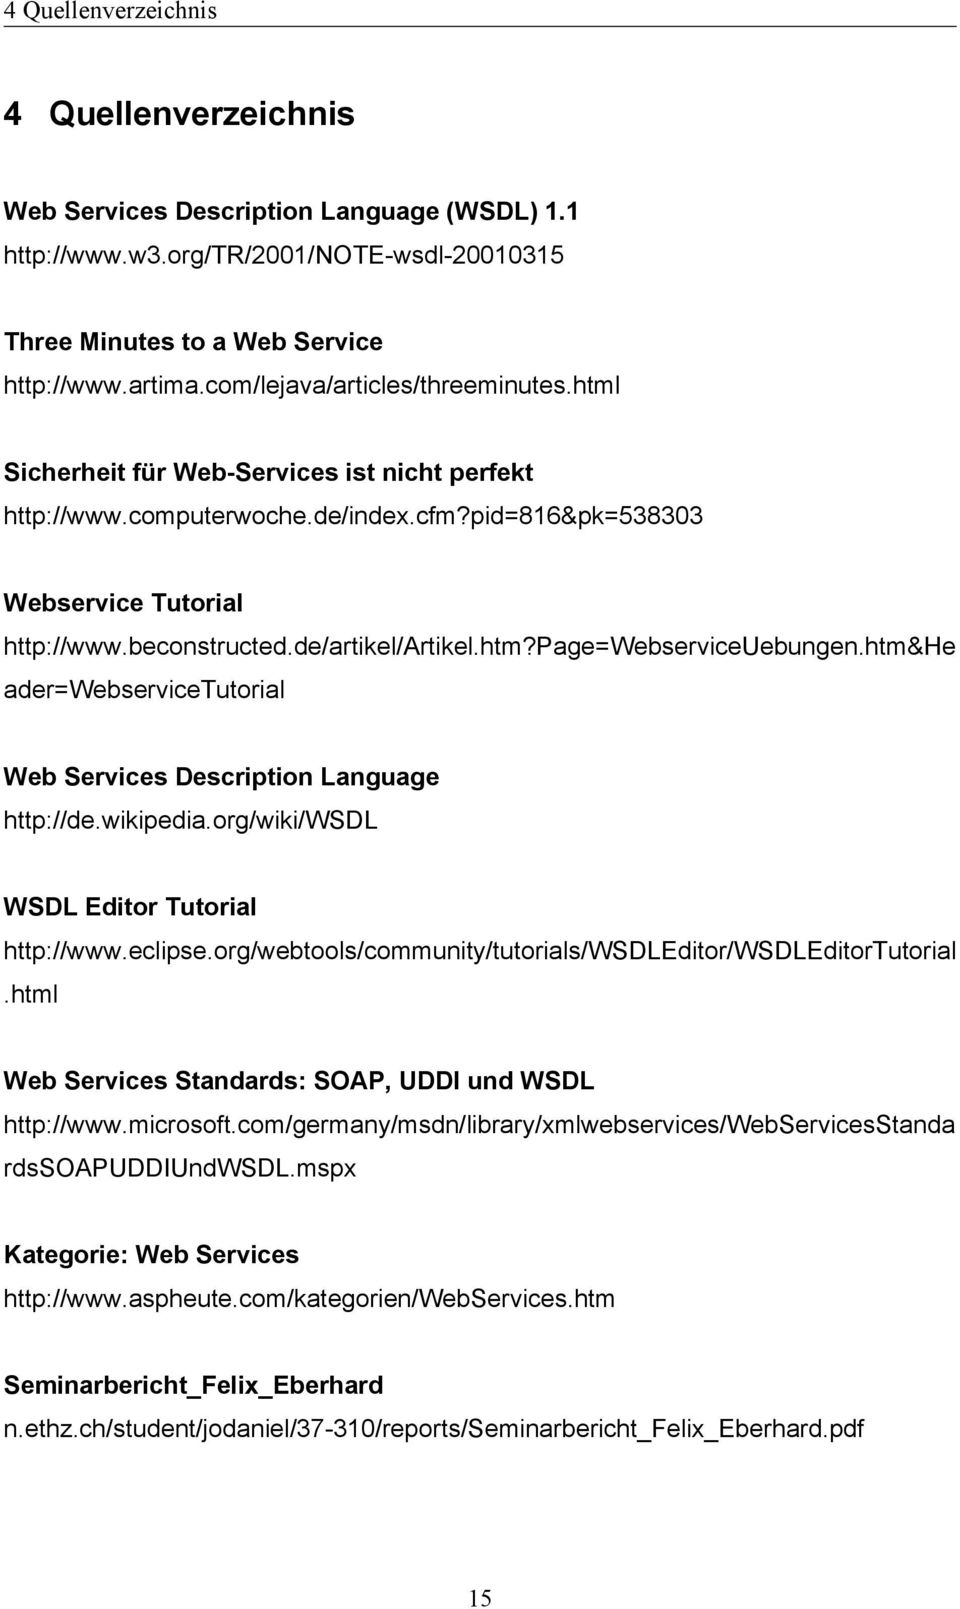 de/artikel/artikel.htm?page=webserviceuebungen.htm&he ader=webservicetutorial Web Services Description Language http://de.wikipedia.org/wiki/wsdl WSDL Editor Tutorial http://www.eclipse.